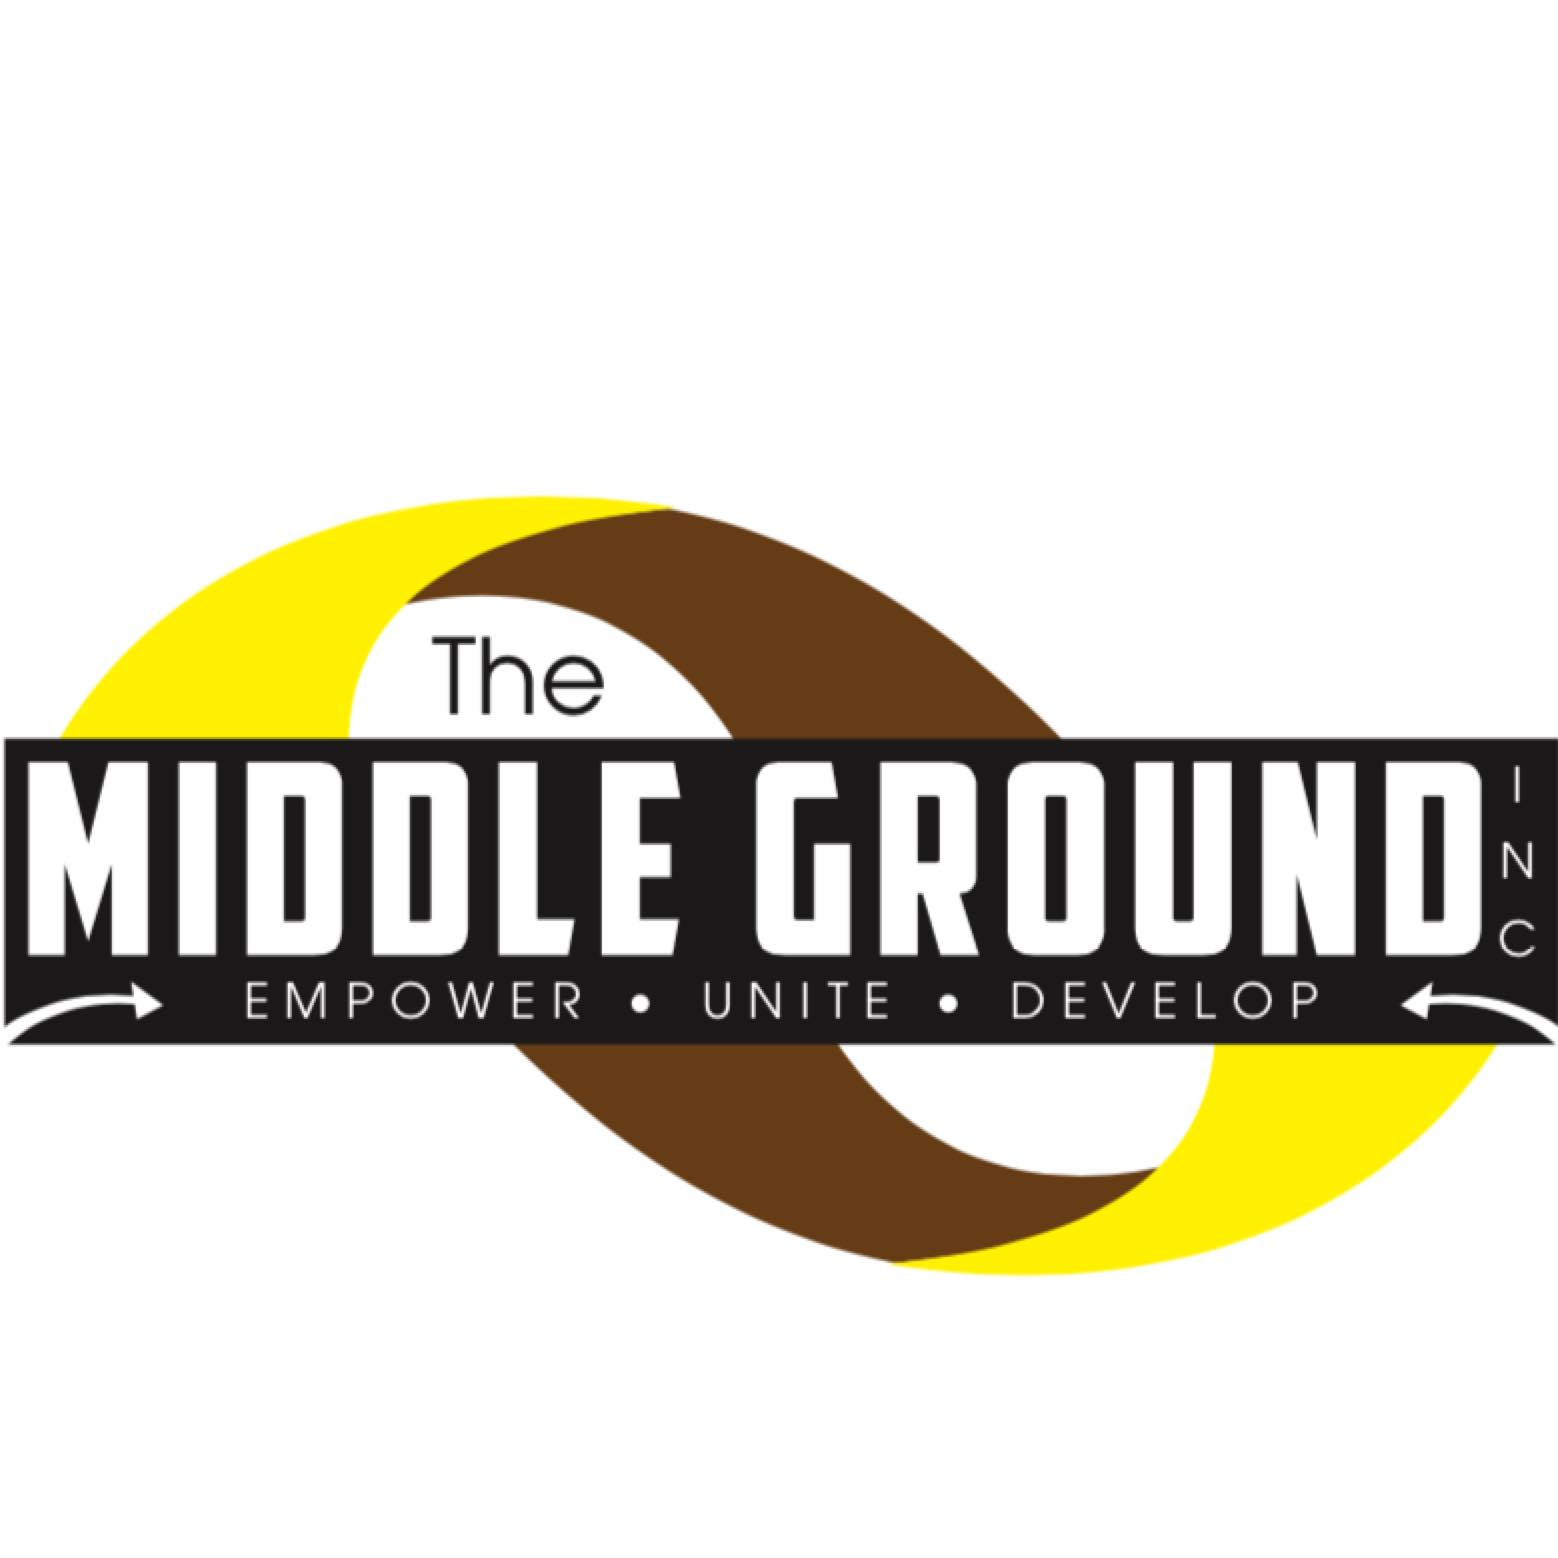 Middle Ground Mke